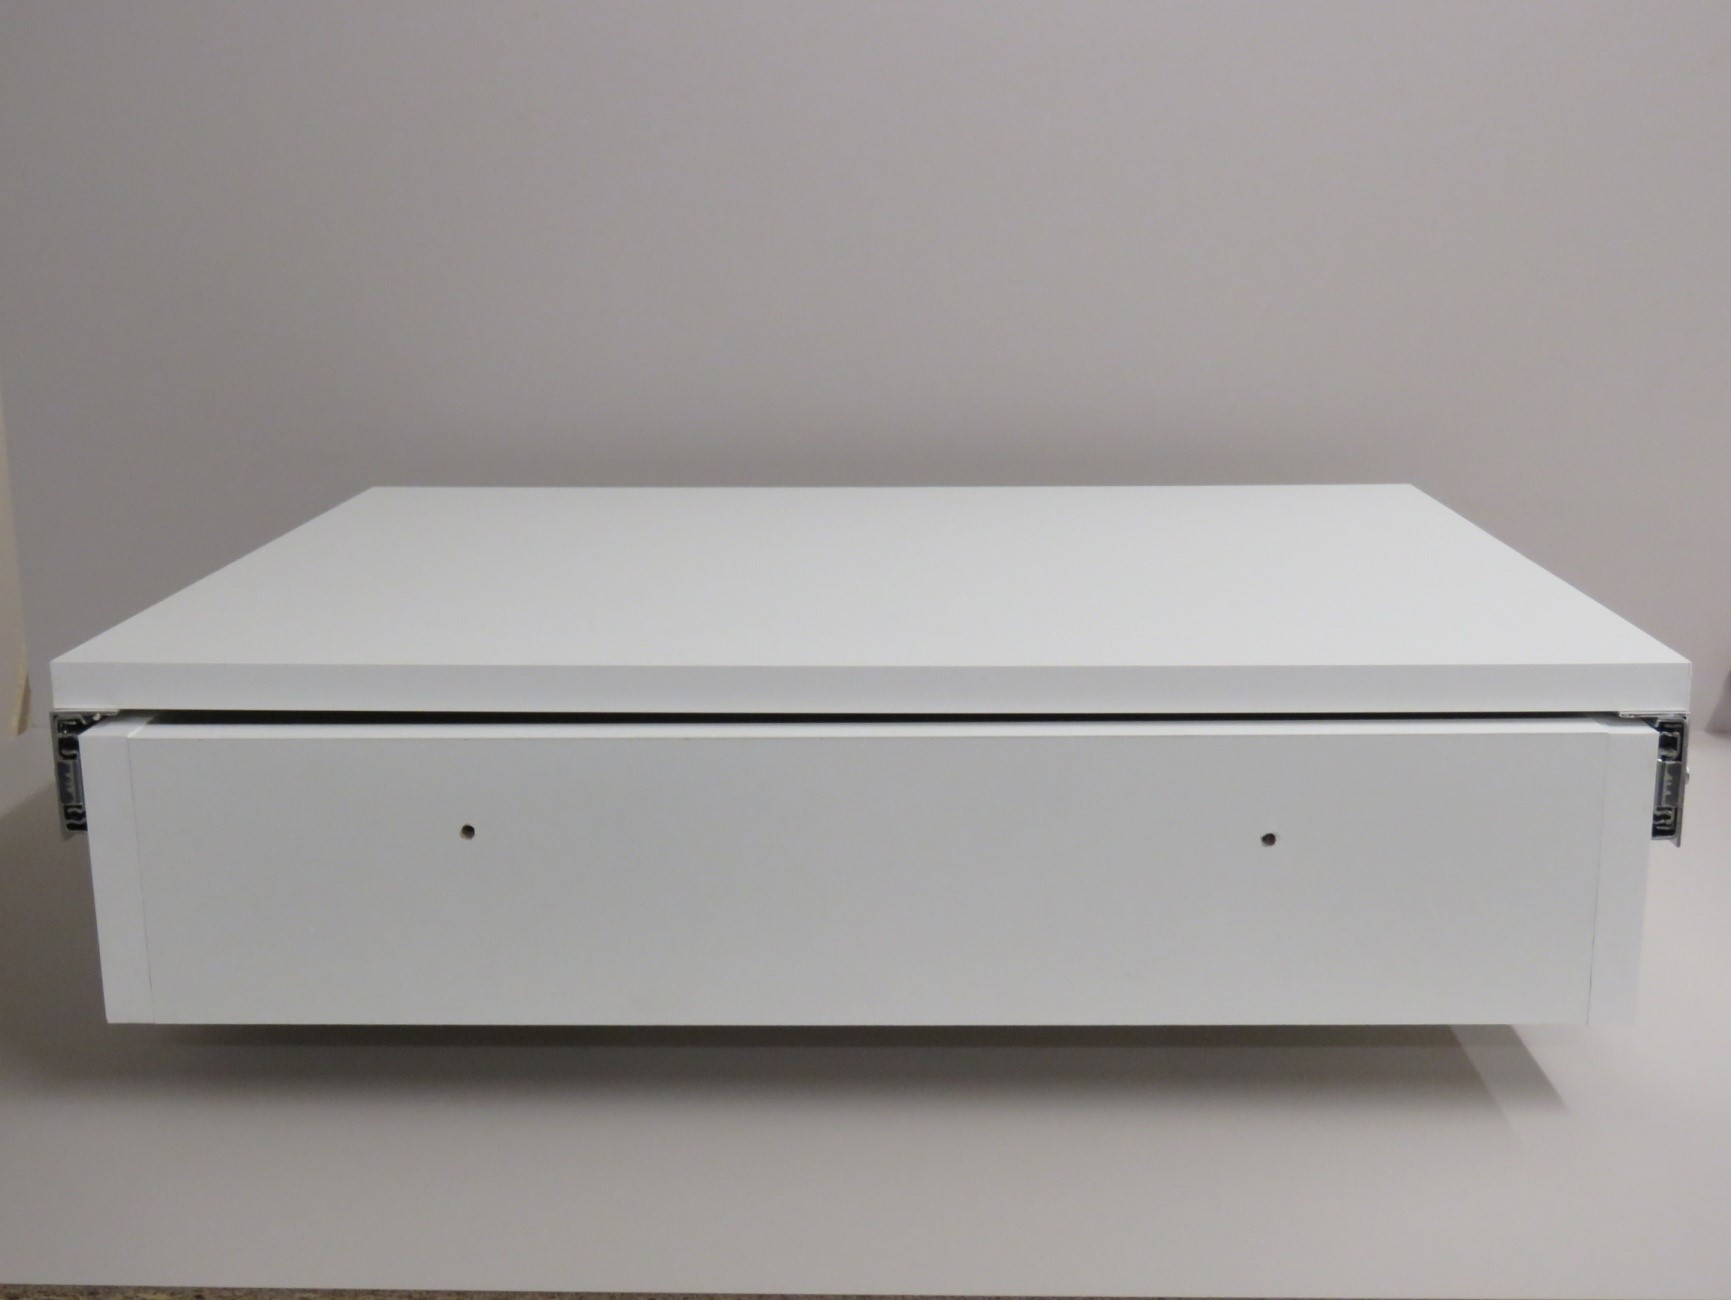 Plinth Box System - 400mm D x 137mm H x for a 1000mm Wide Unit